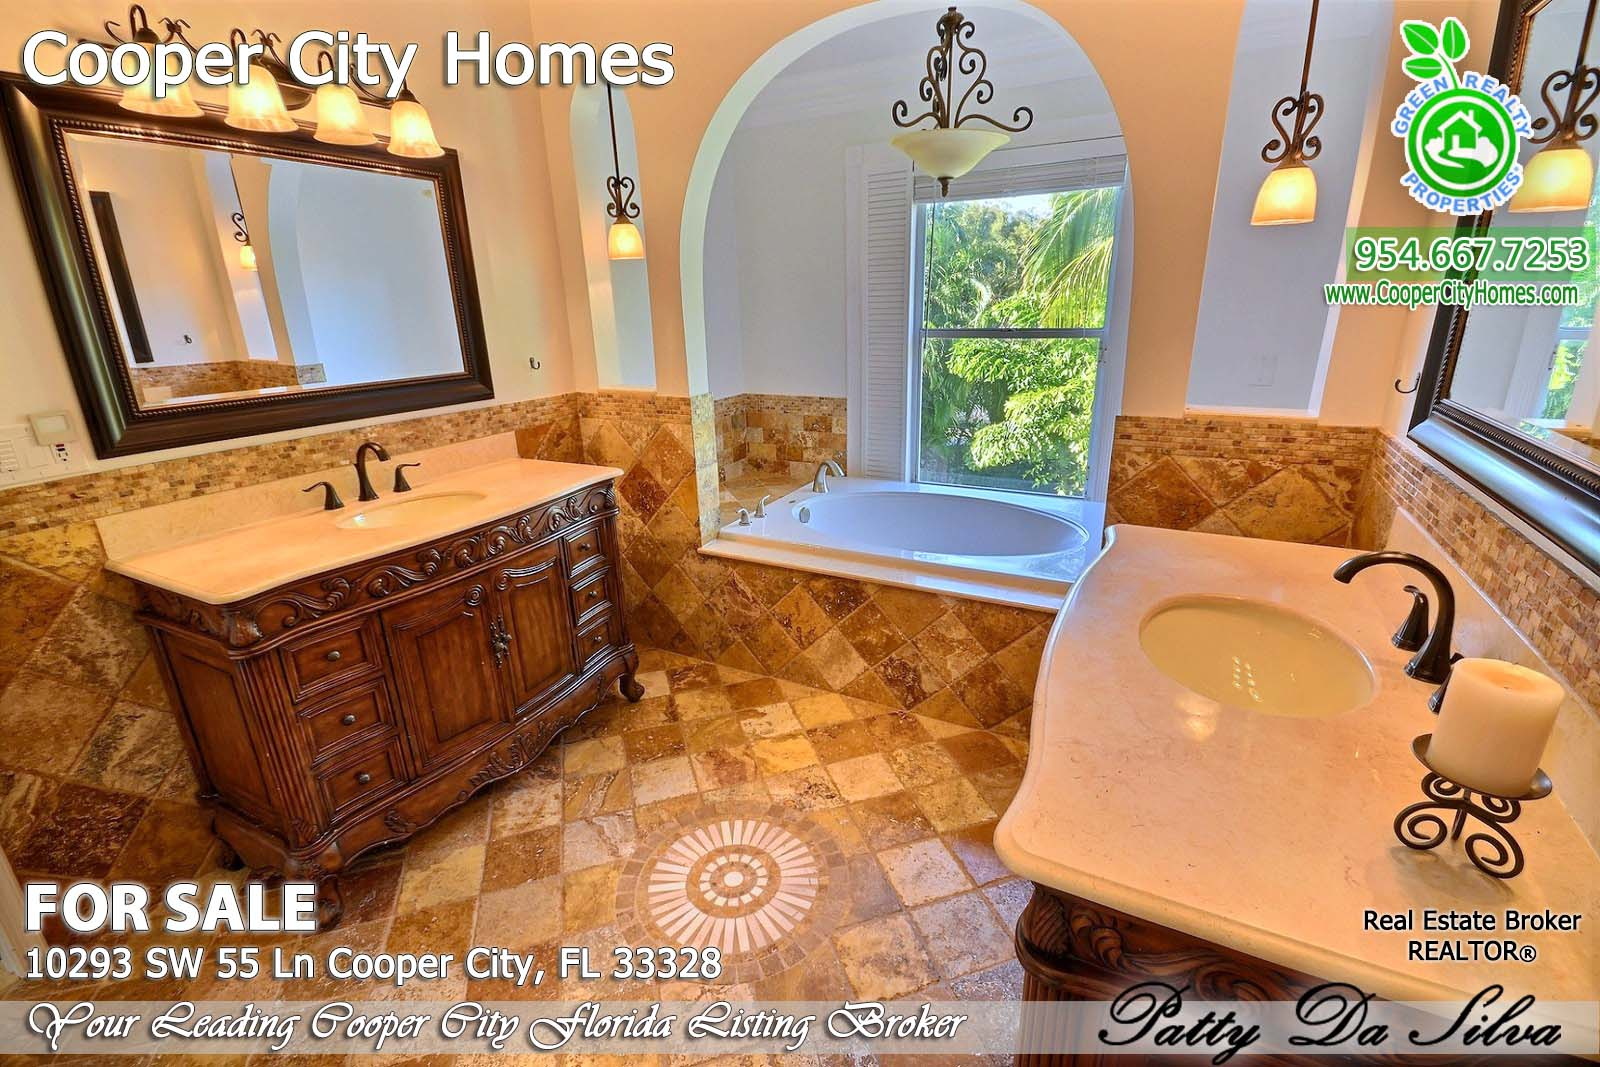 10293 - Cooper City Homes For Sale (29)